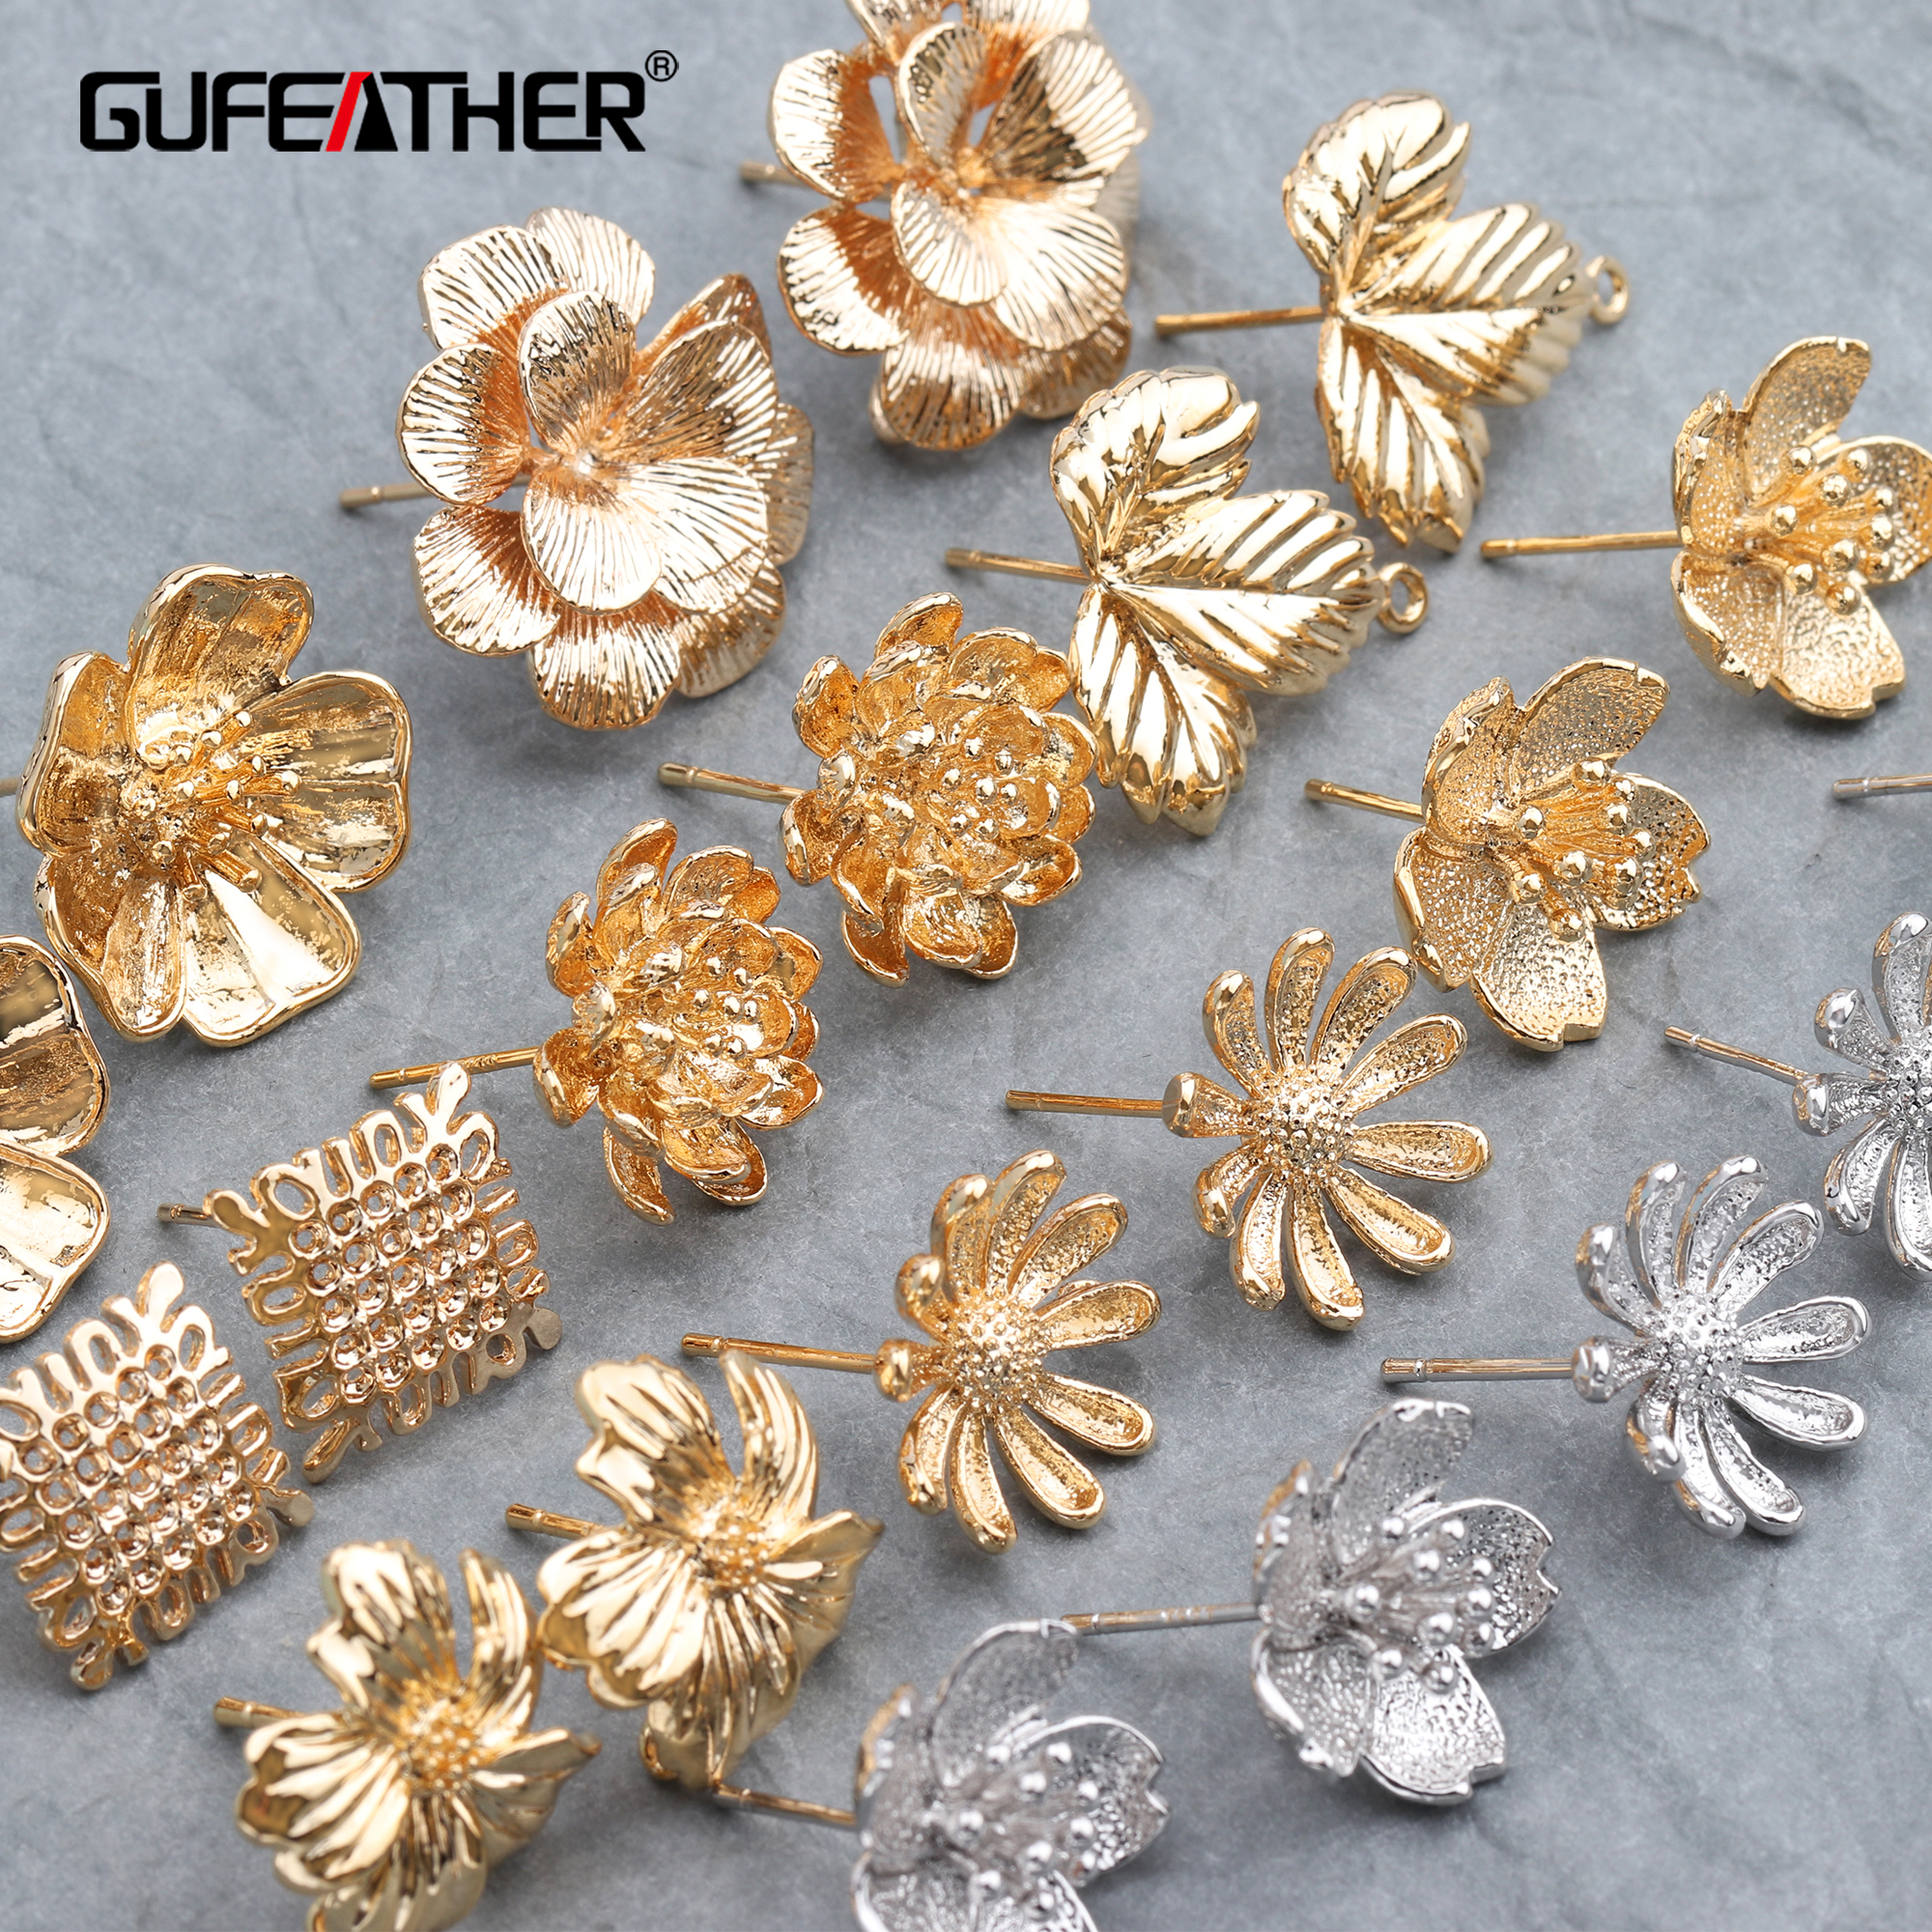 GUFEATHER M600,jewelry Accessories,18k Gold Plated,rhodium Plated,stud Earring,hand Made,diy Earring,jewelry Making,10pcs/lot